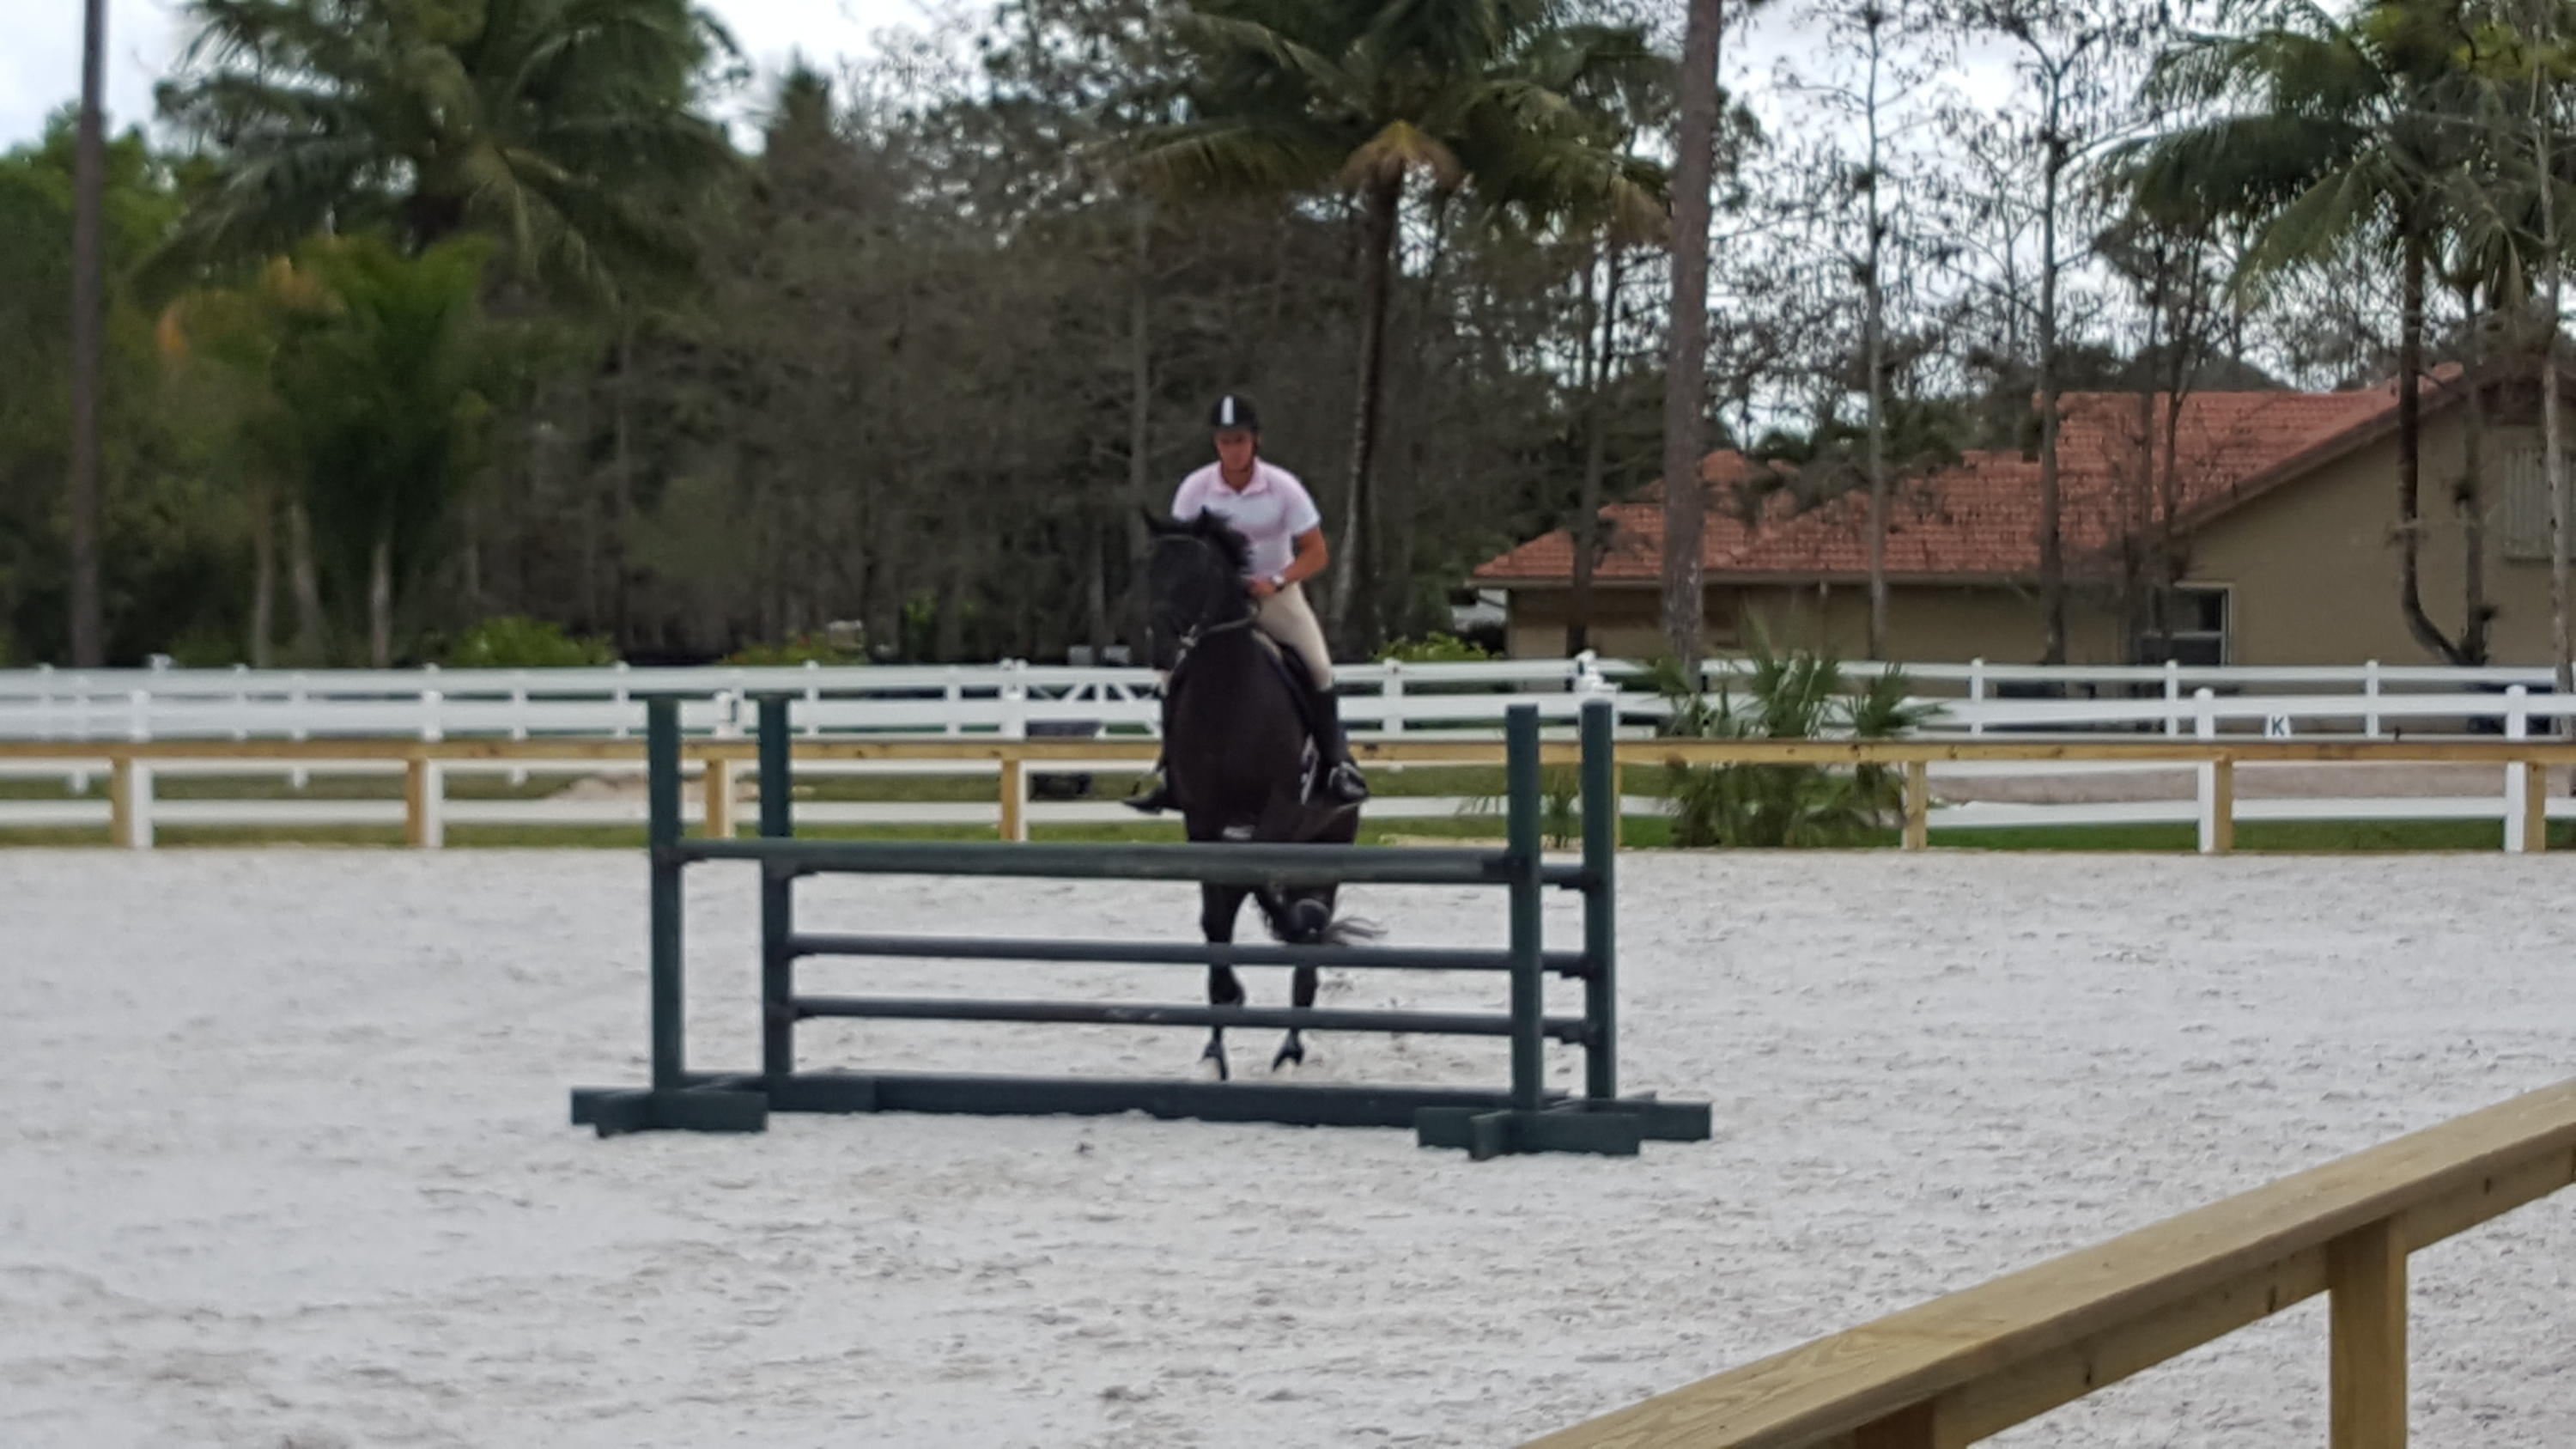 Great riding ring